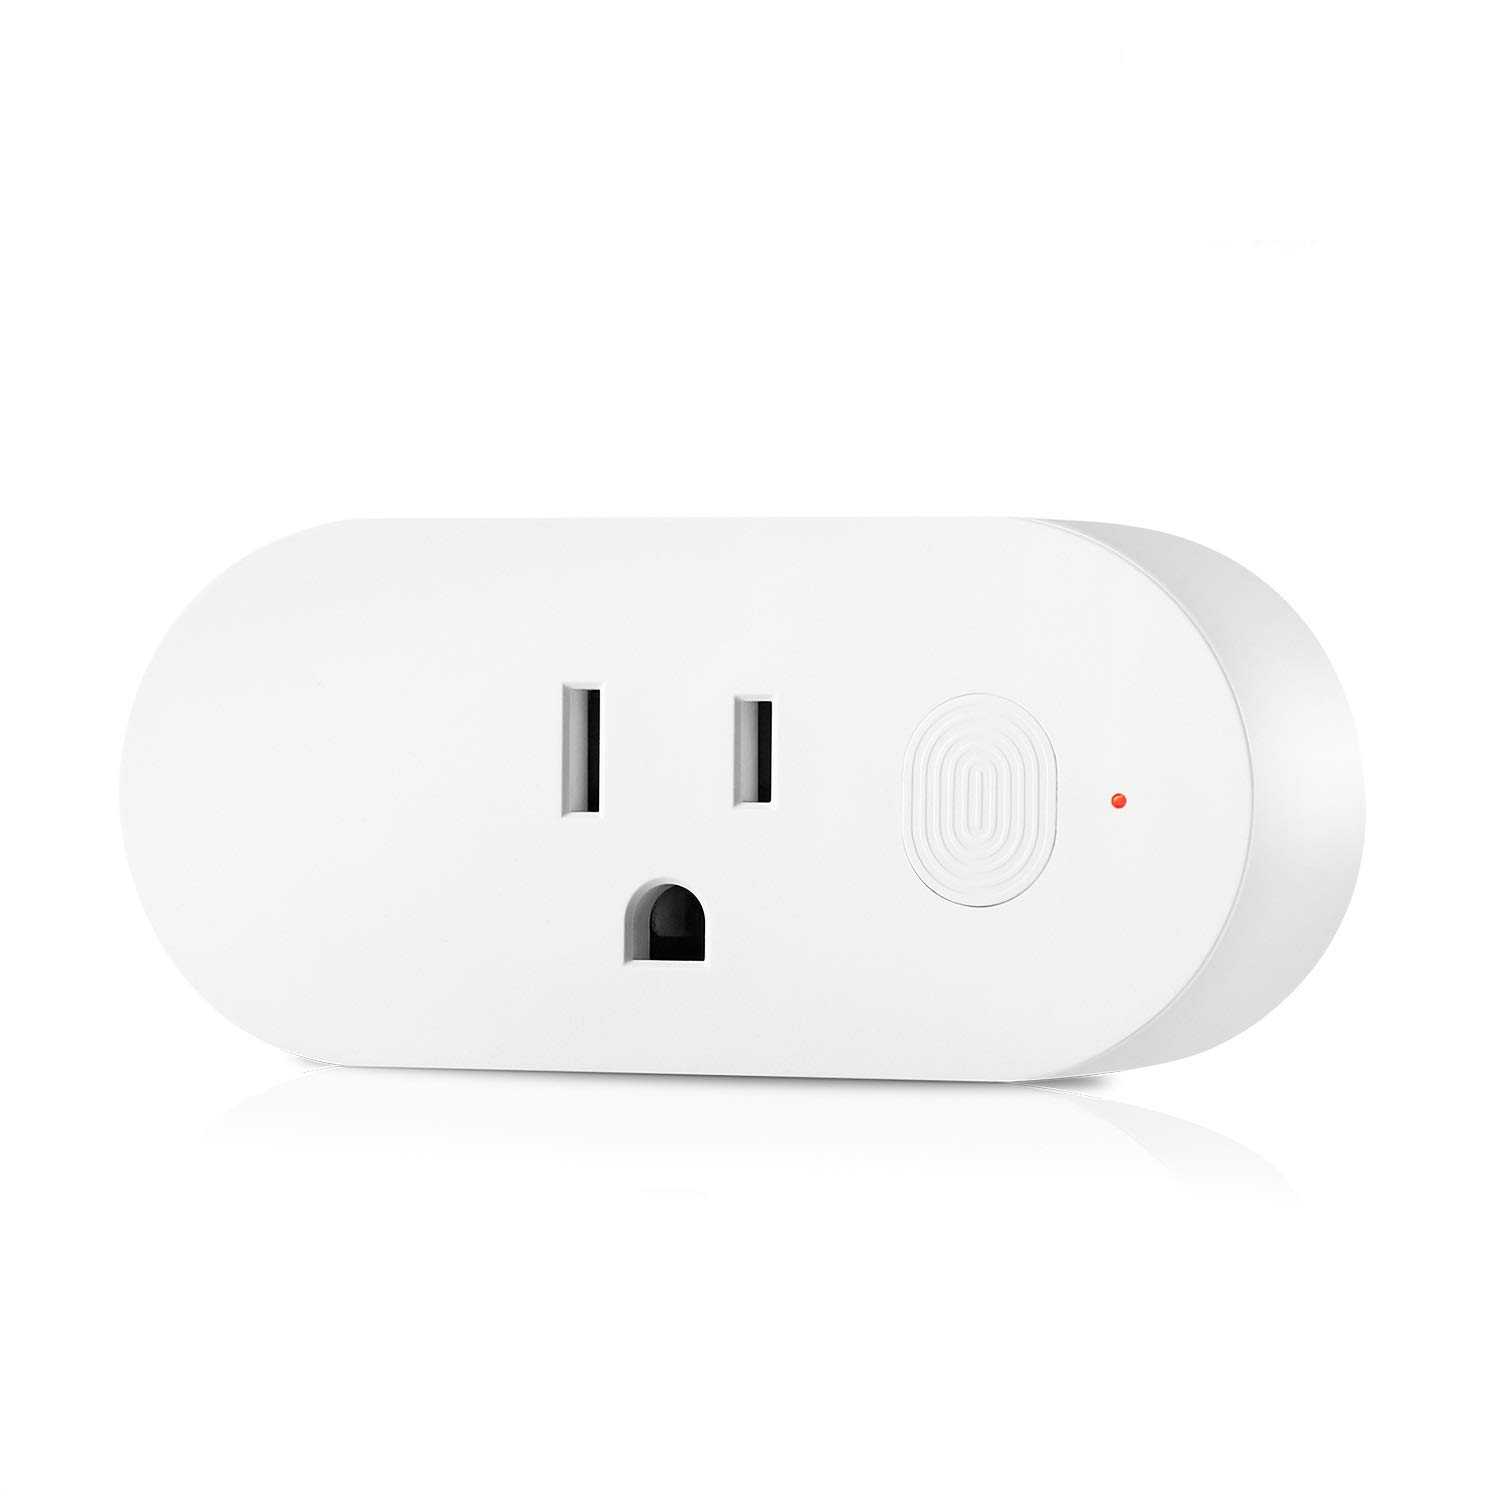 Apromio AWP04L-1 Plug 16A Wi-Fi Enabled Smart Outlet Work with Amazon Alexa Google Home